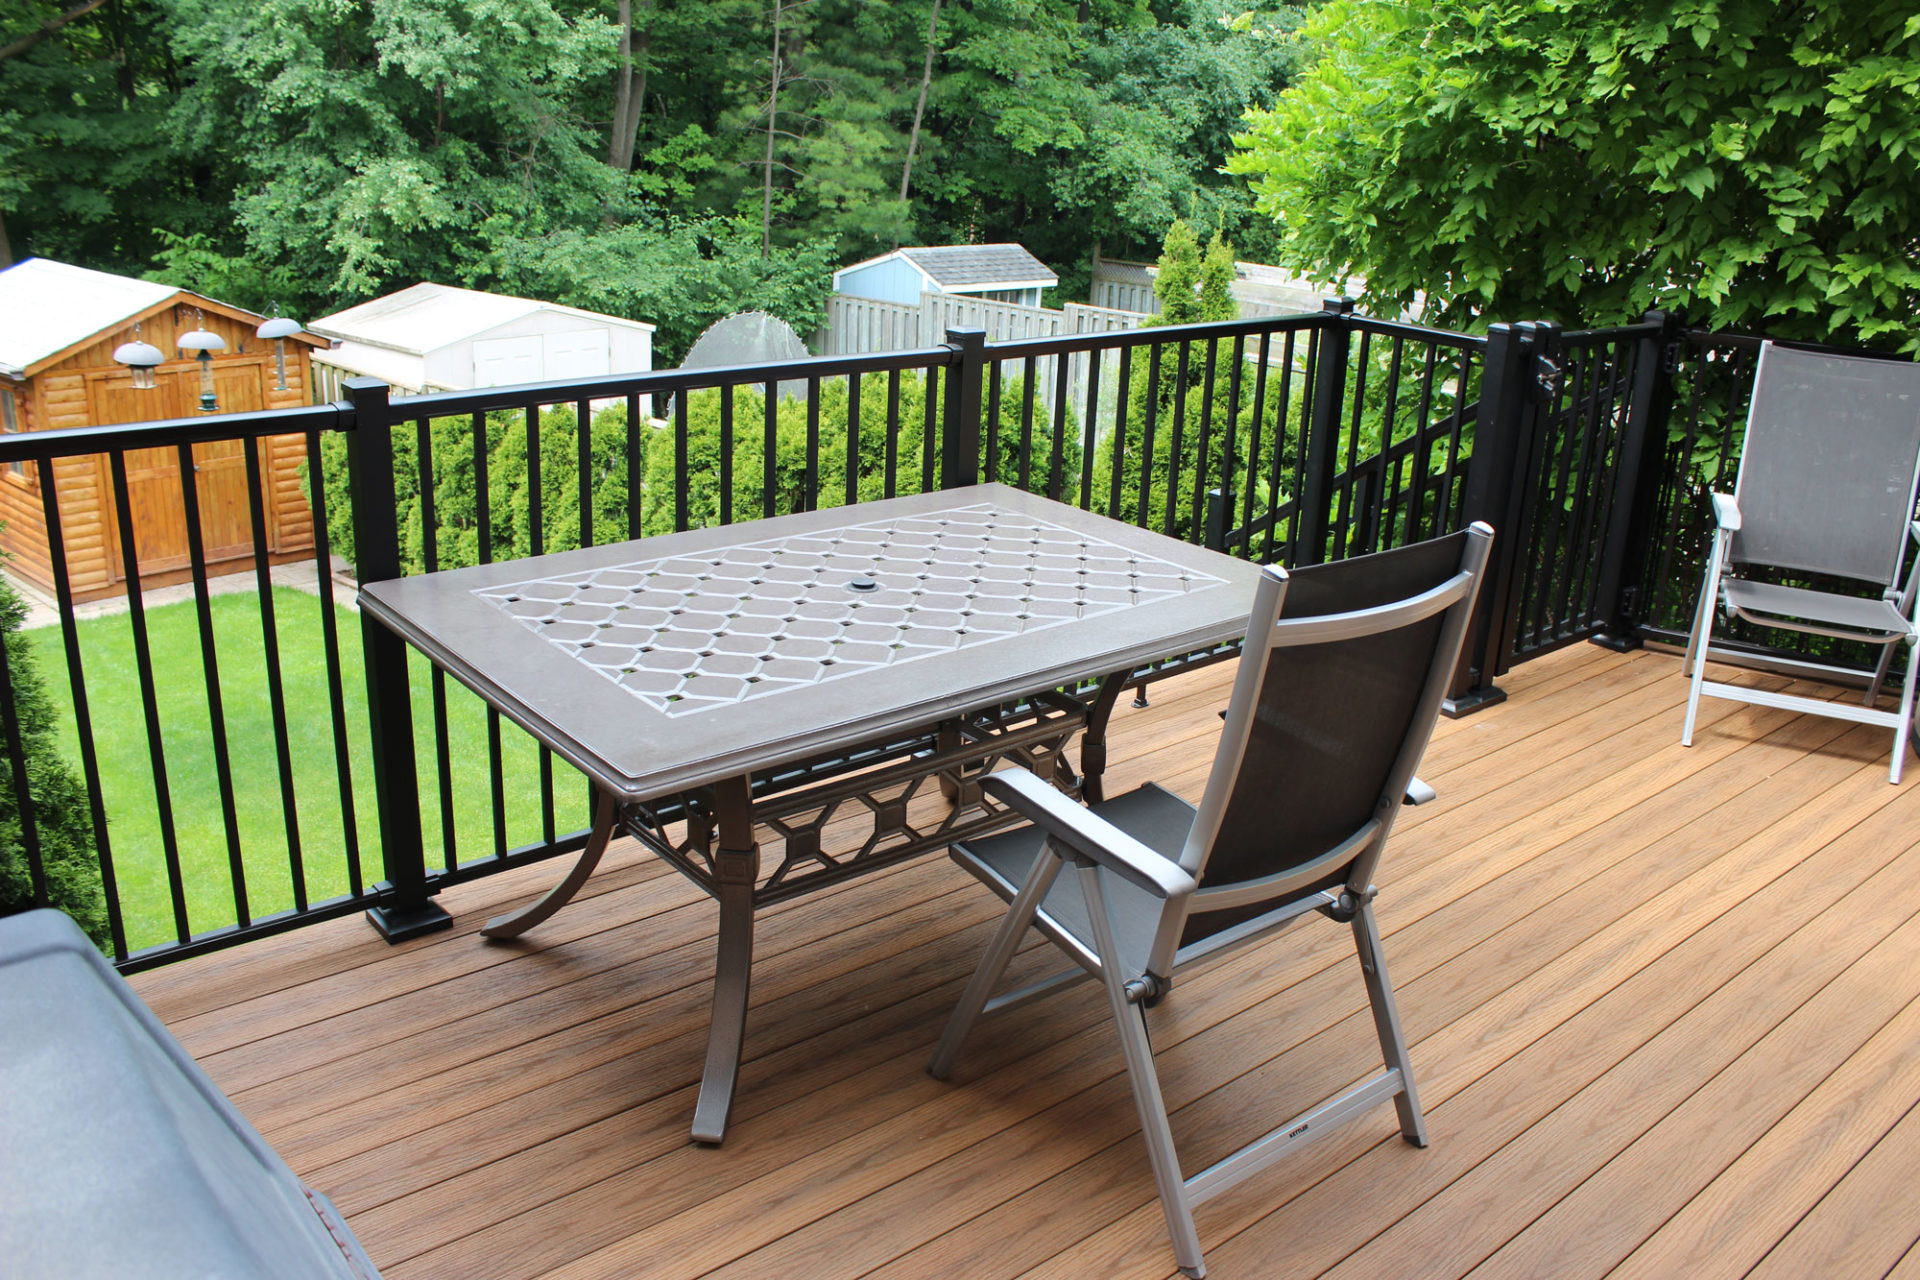 Tiva-Deck-its-the-Best-PVC-Decking-Oakville-Tigerwood